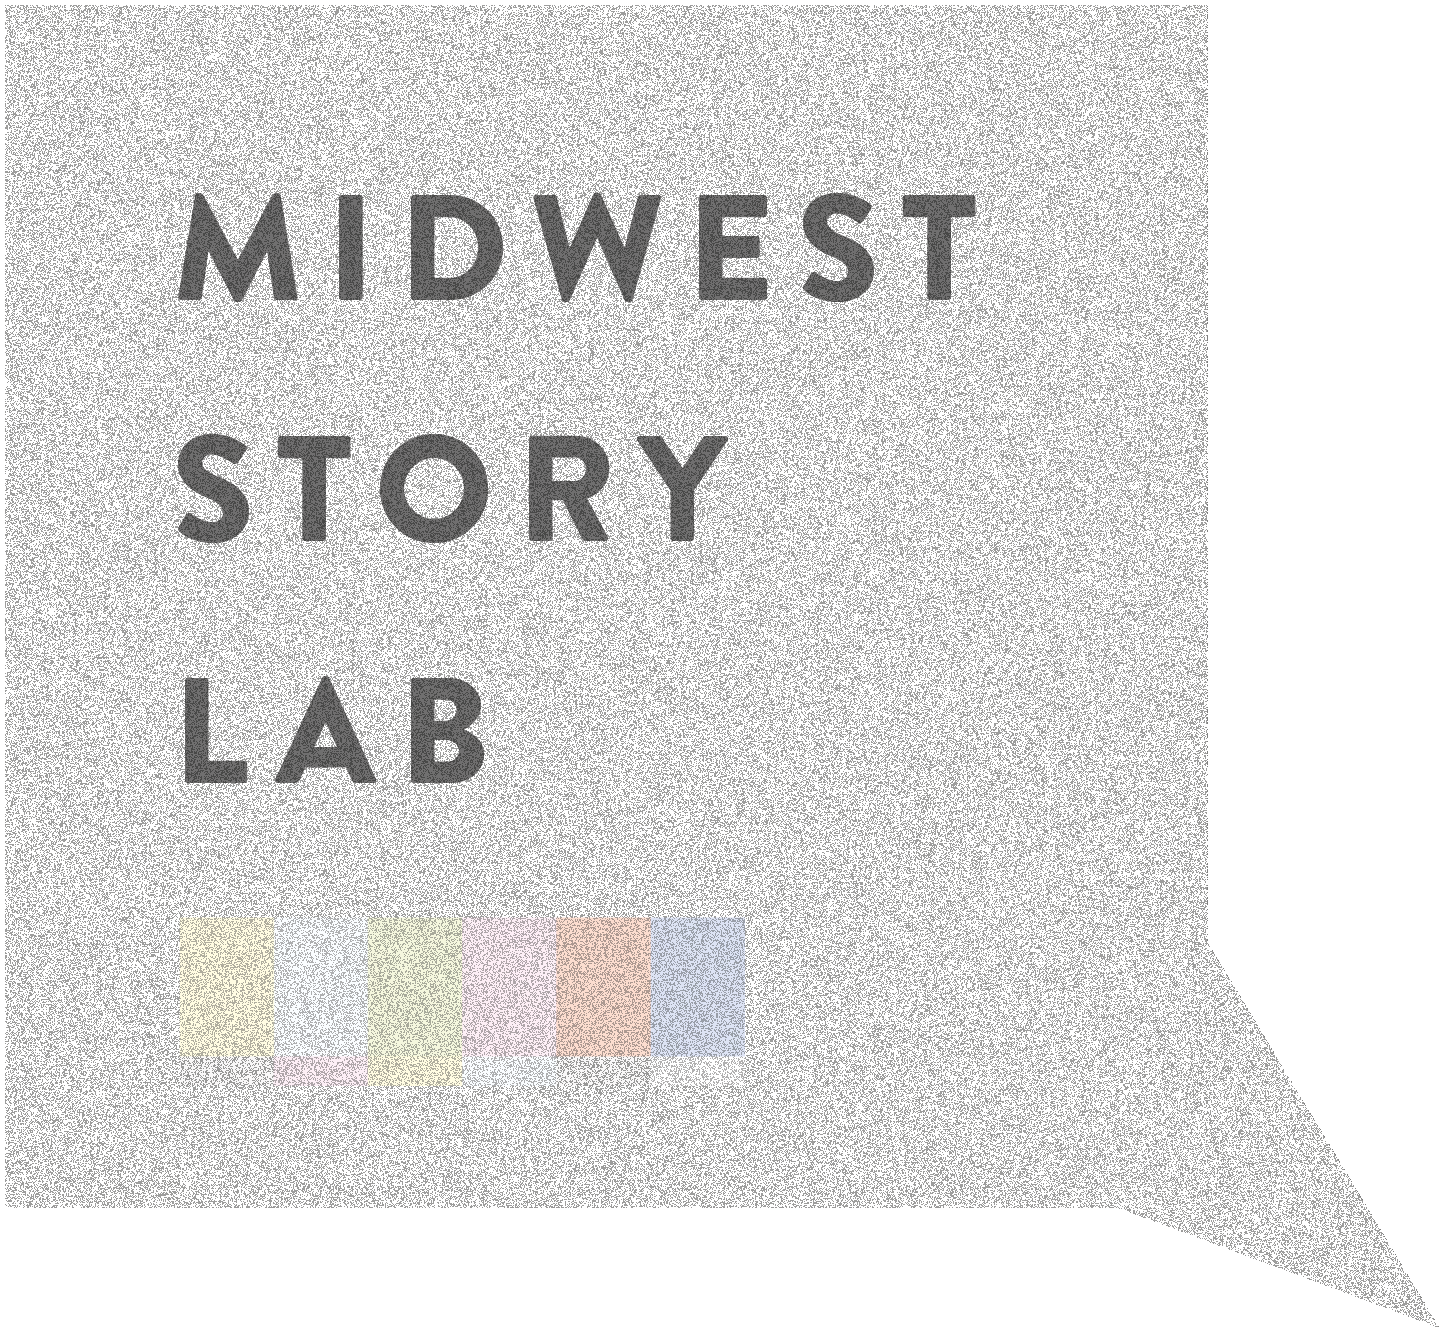 Midwest Story Lab